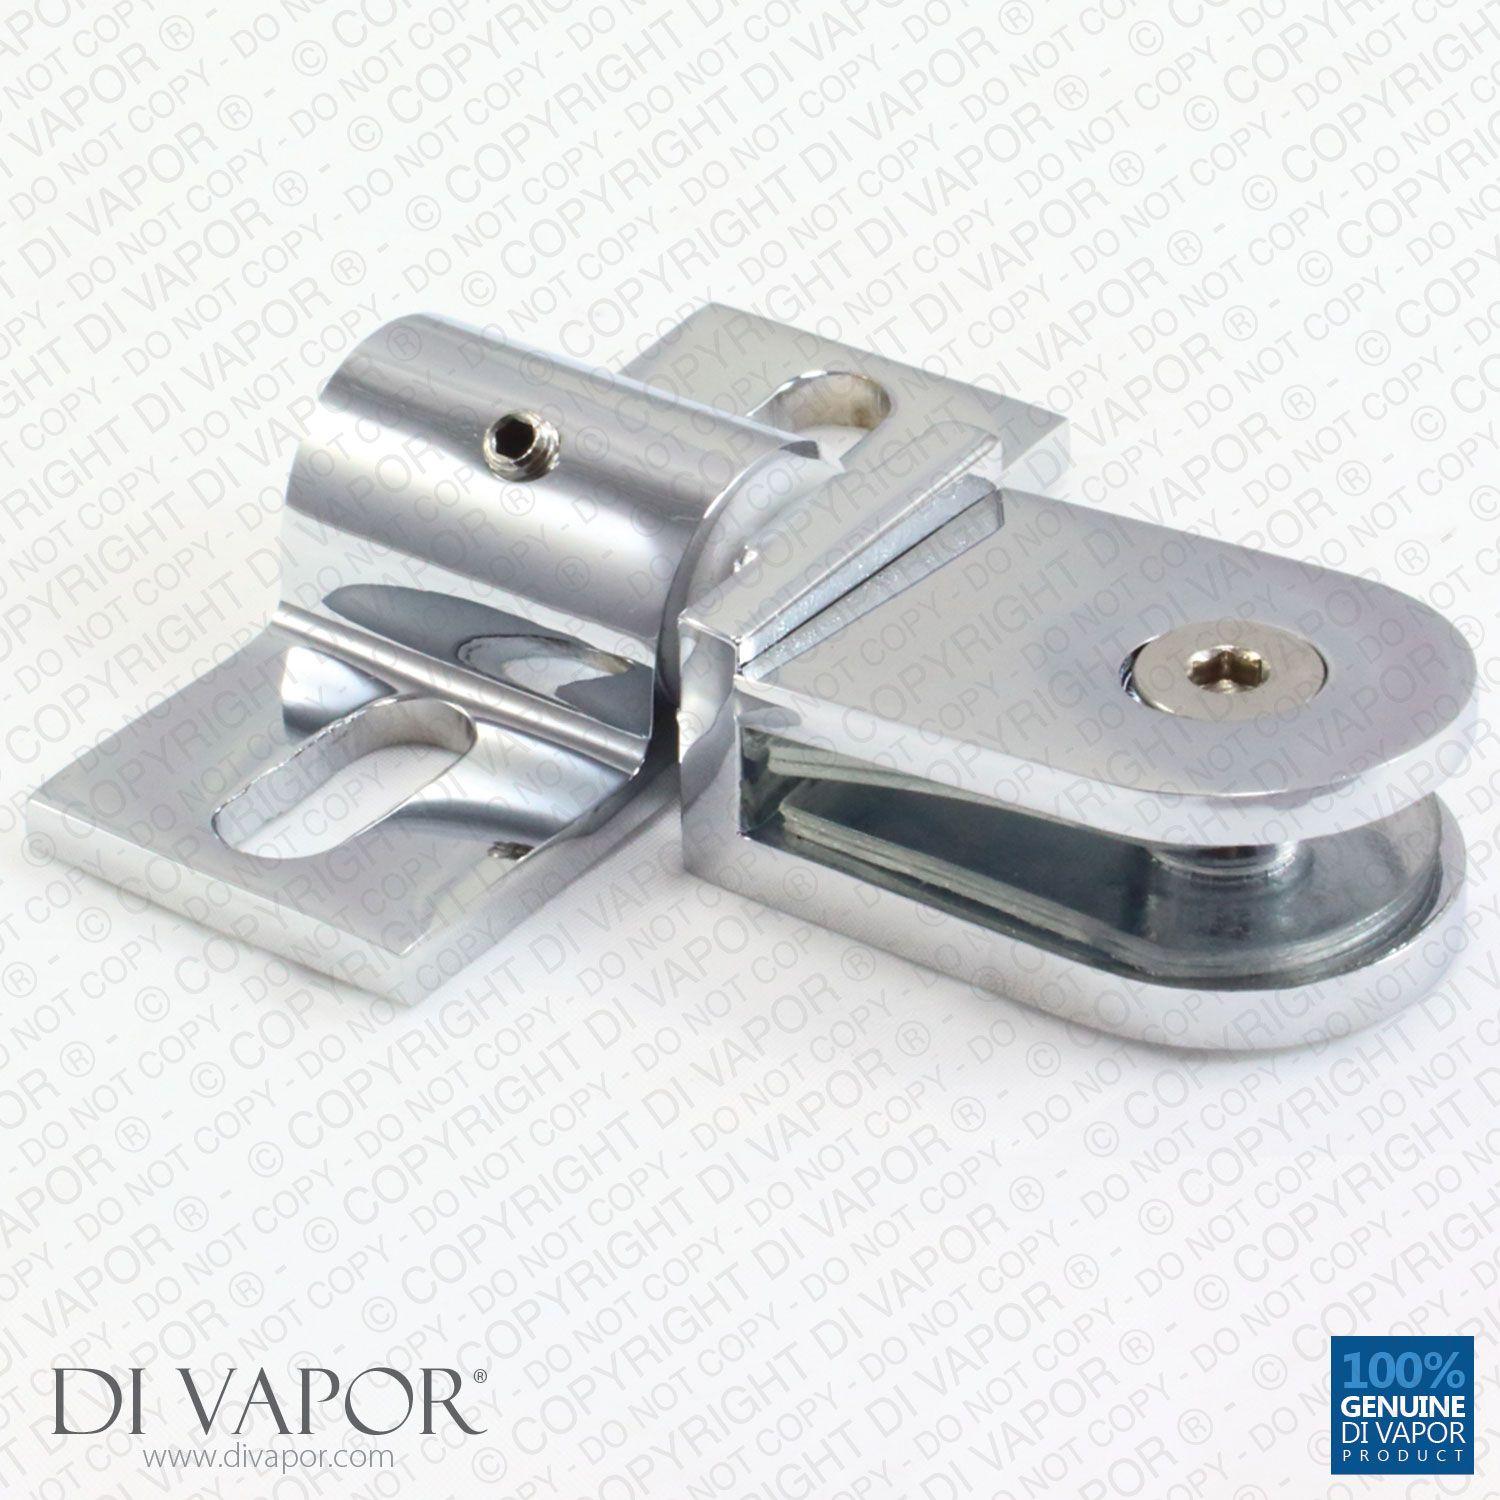 This Is A Di Vapor Polished Chrome Door Pivot Hinge Which Is Typically Used  For Glass Doors And Glass Panels.